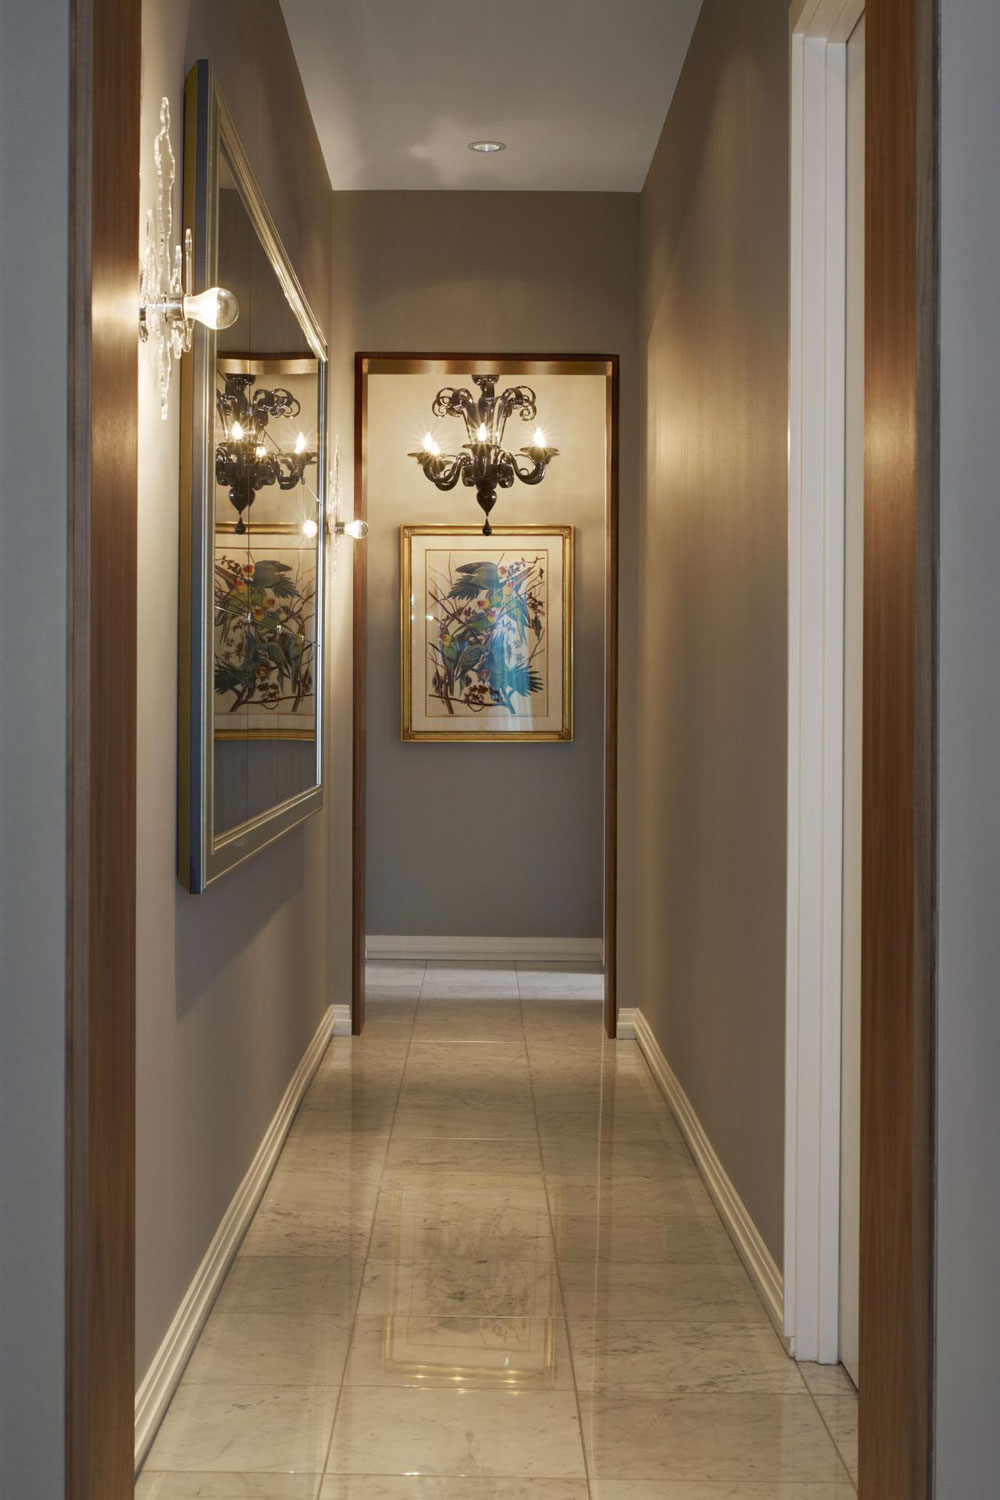 warm-your-day-with-these-hallway-decorating-ideas-5